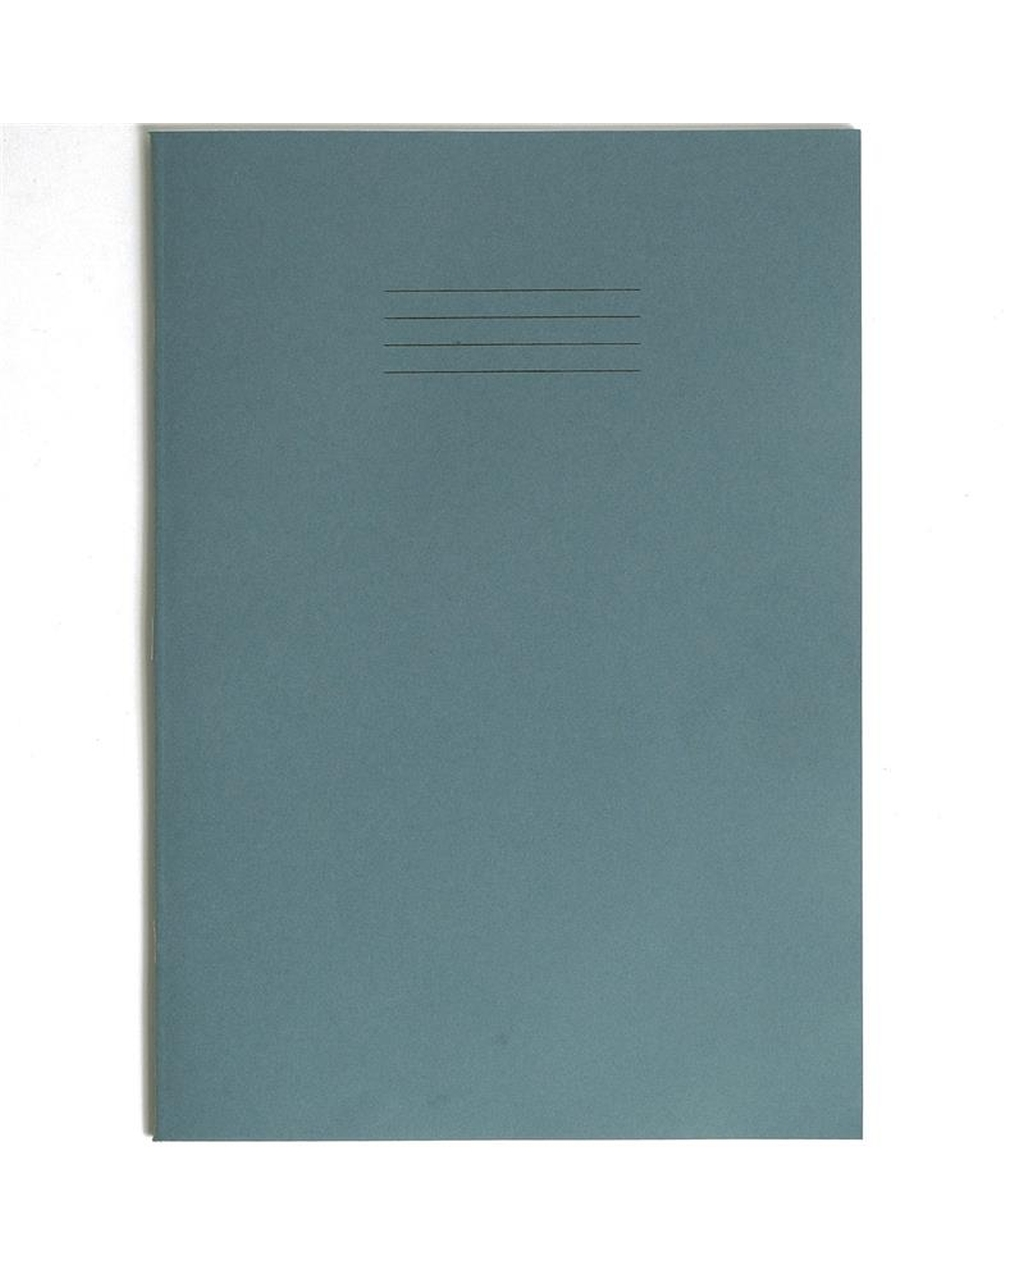 Exercise Book A4+ (330 x 250mm) Light Blue Cover 12mm Ruled 80 Pages